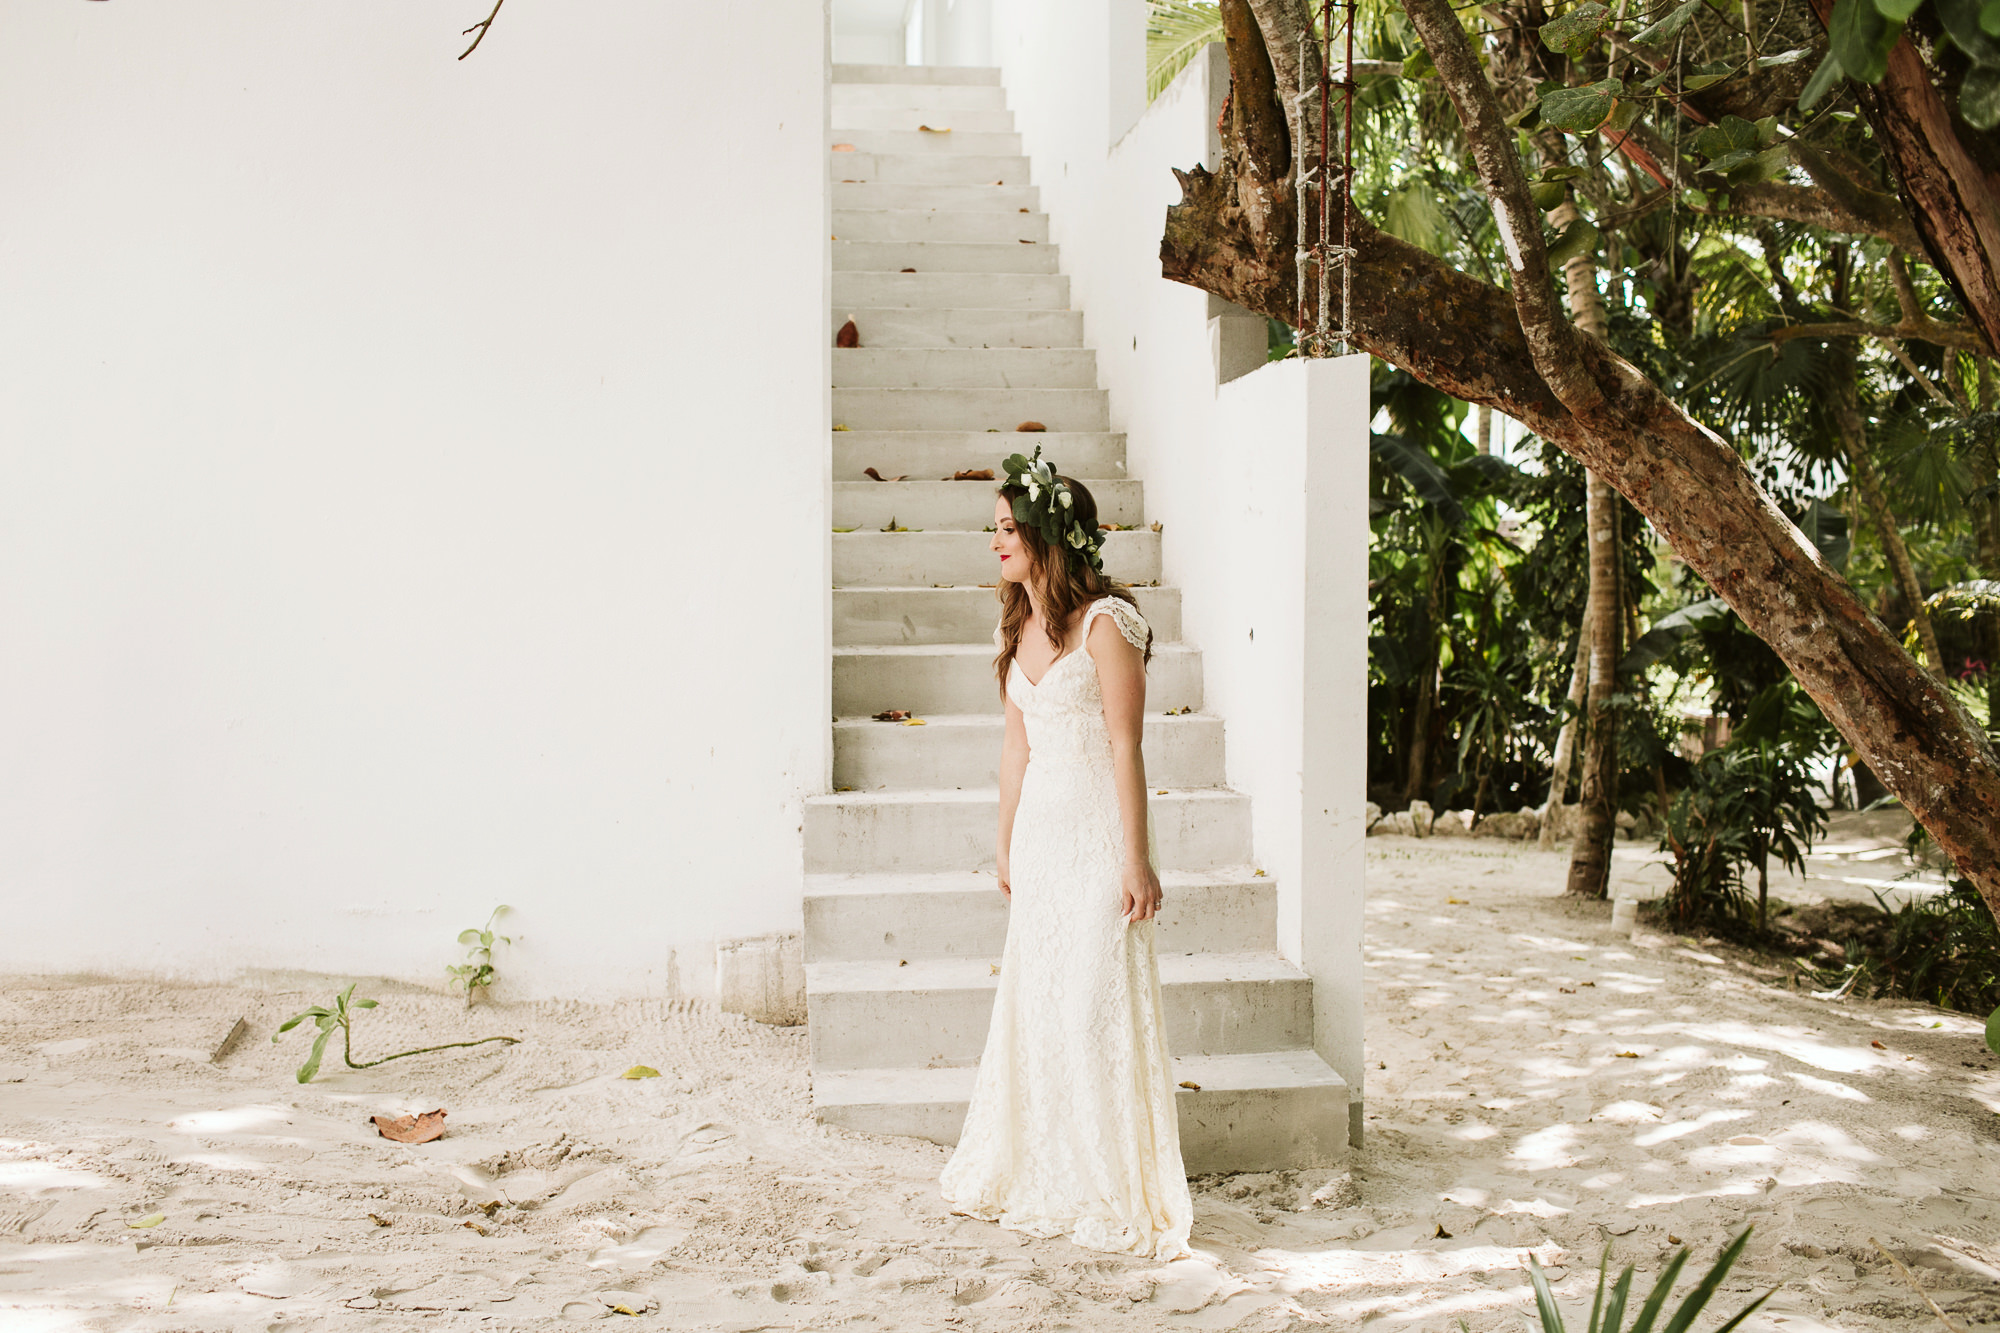 cancun_beach_wedding_casa_malca-91.jpg